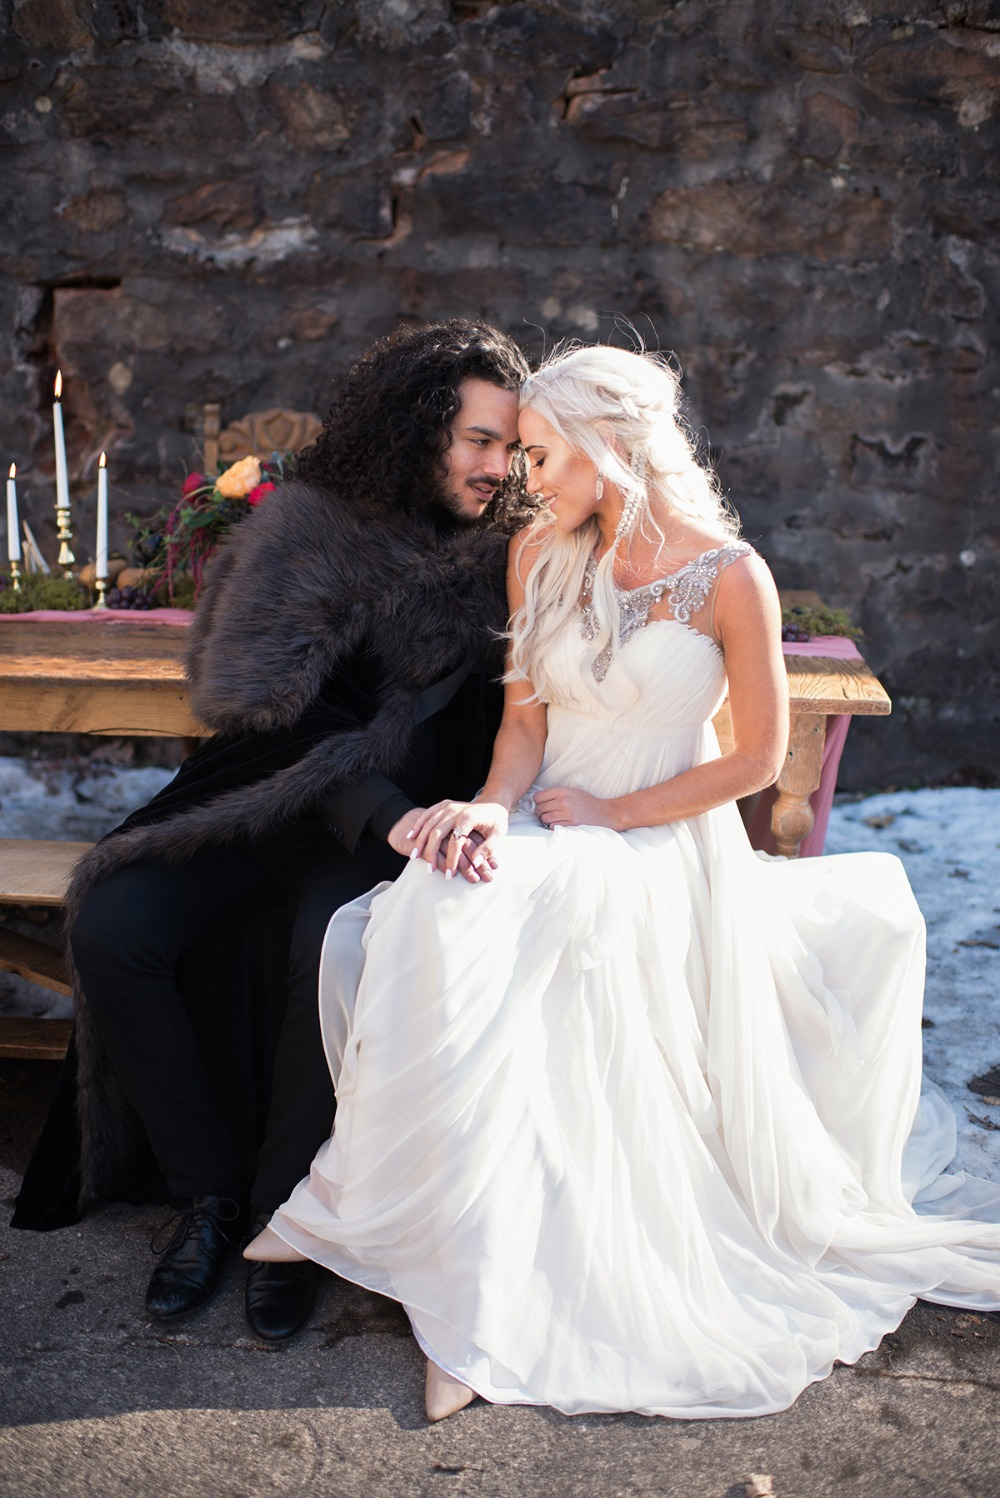 a Daenerys inspired bridal outfit with a draped wedding dress with an embellished neckline and a braided half updo